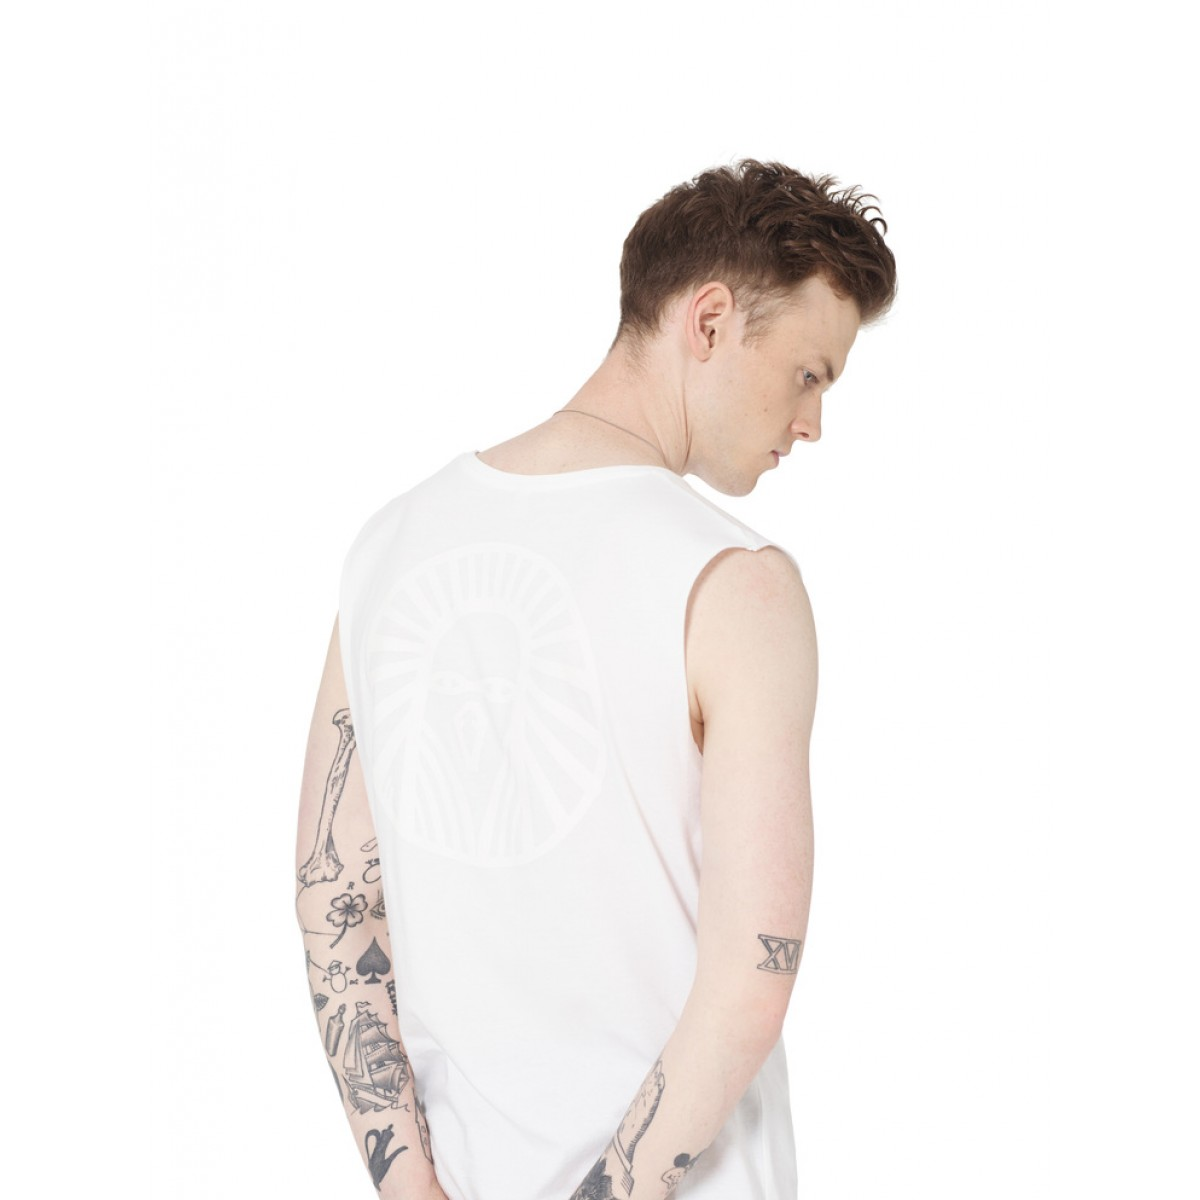 fabelwesen berlin FW.06 WHITE FREEDOM // sleeveless